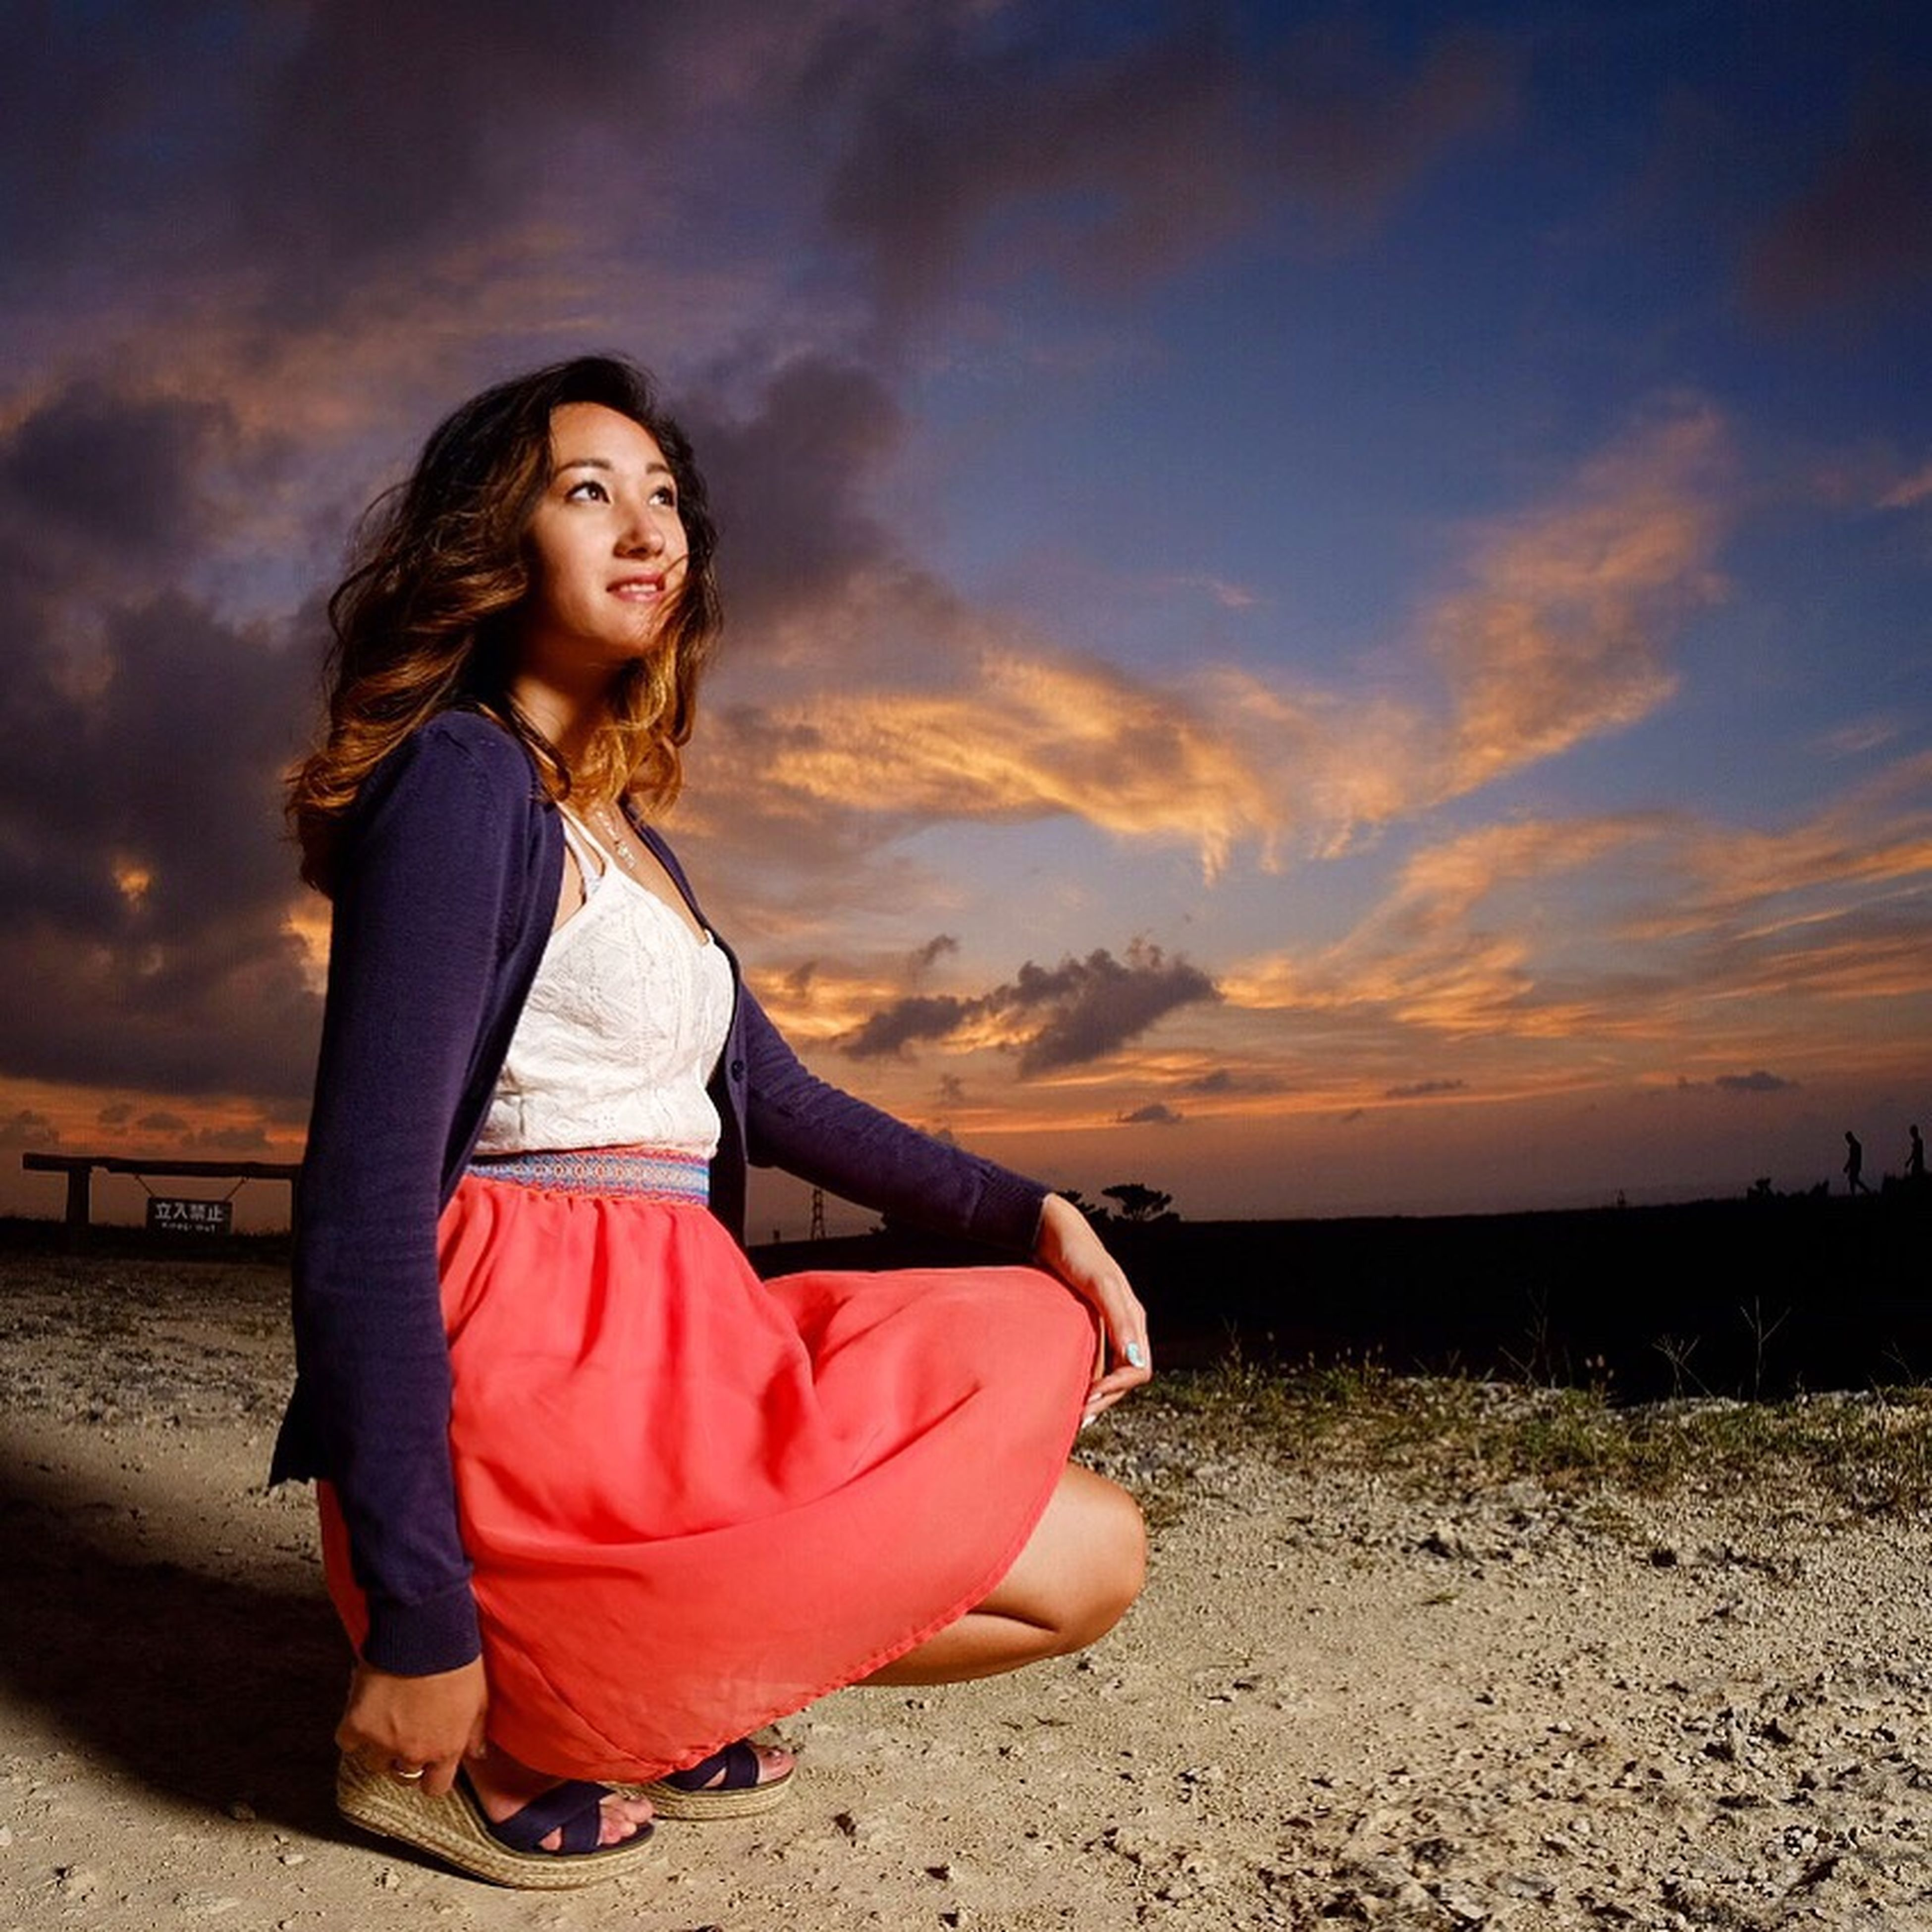 full length, casual clothing, young adult, young women, person, sunset, leisure activity, sky, long hair, cloud, field, vacations, contemplation, mixed race person, posing